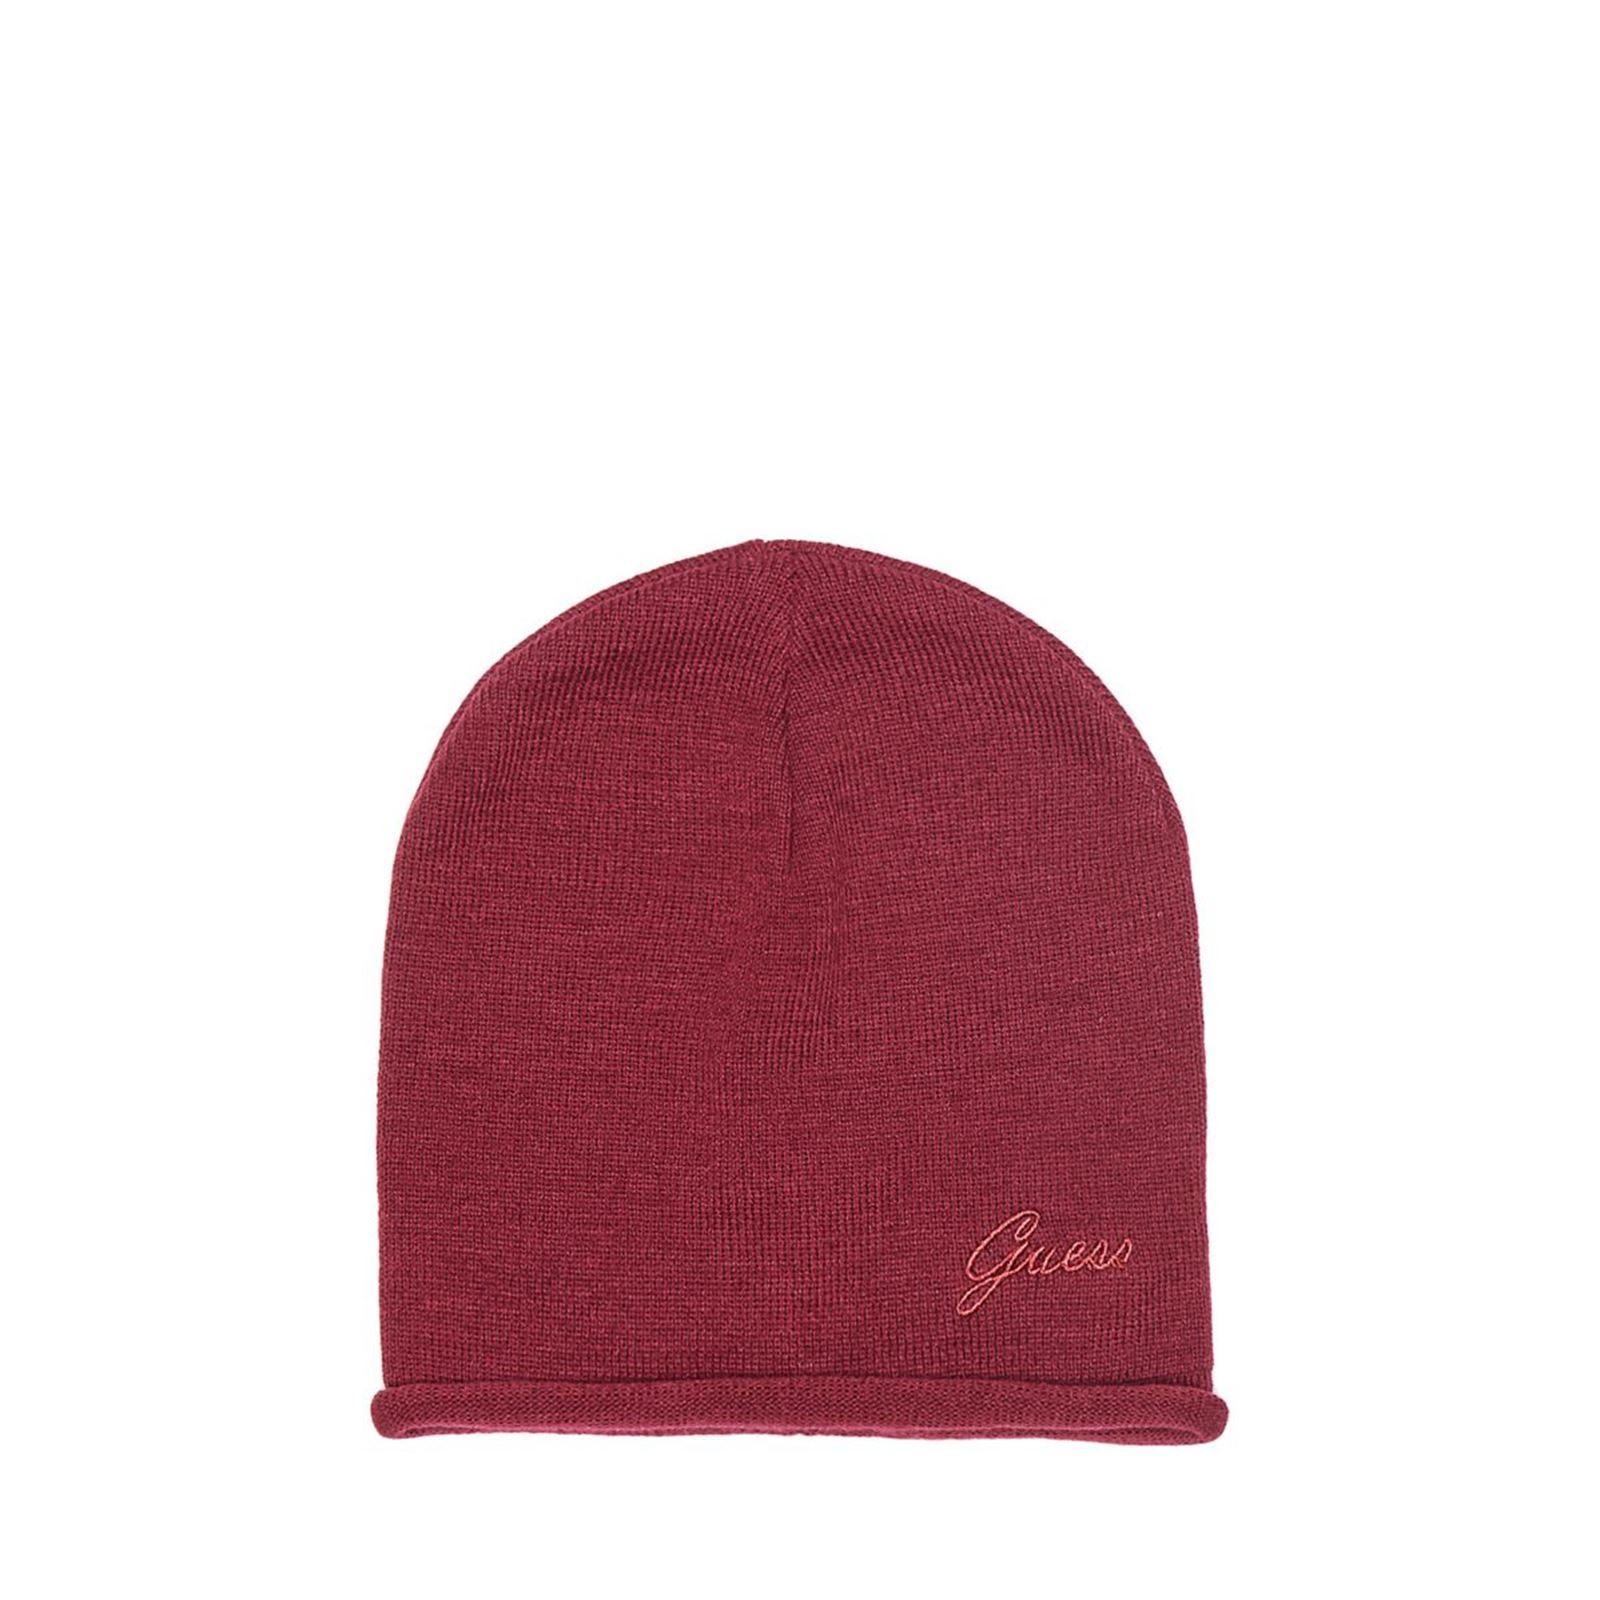 Guess Bonnet - rouge